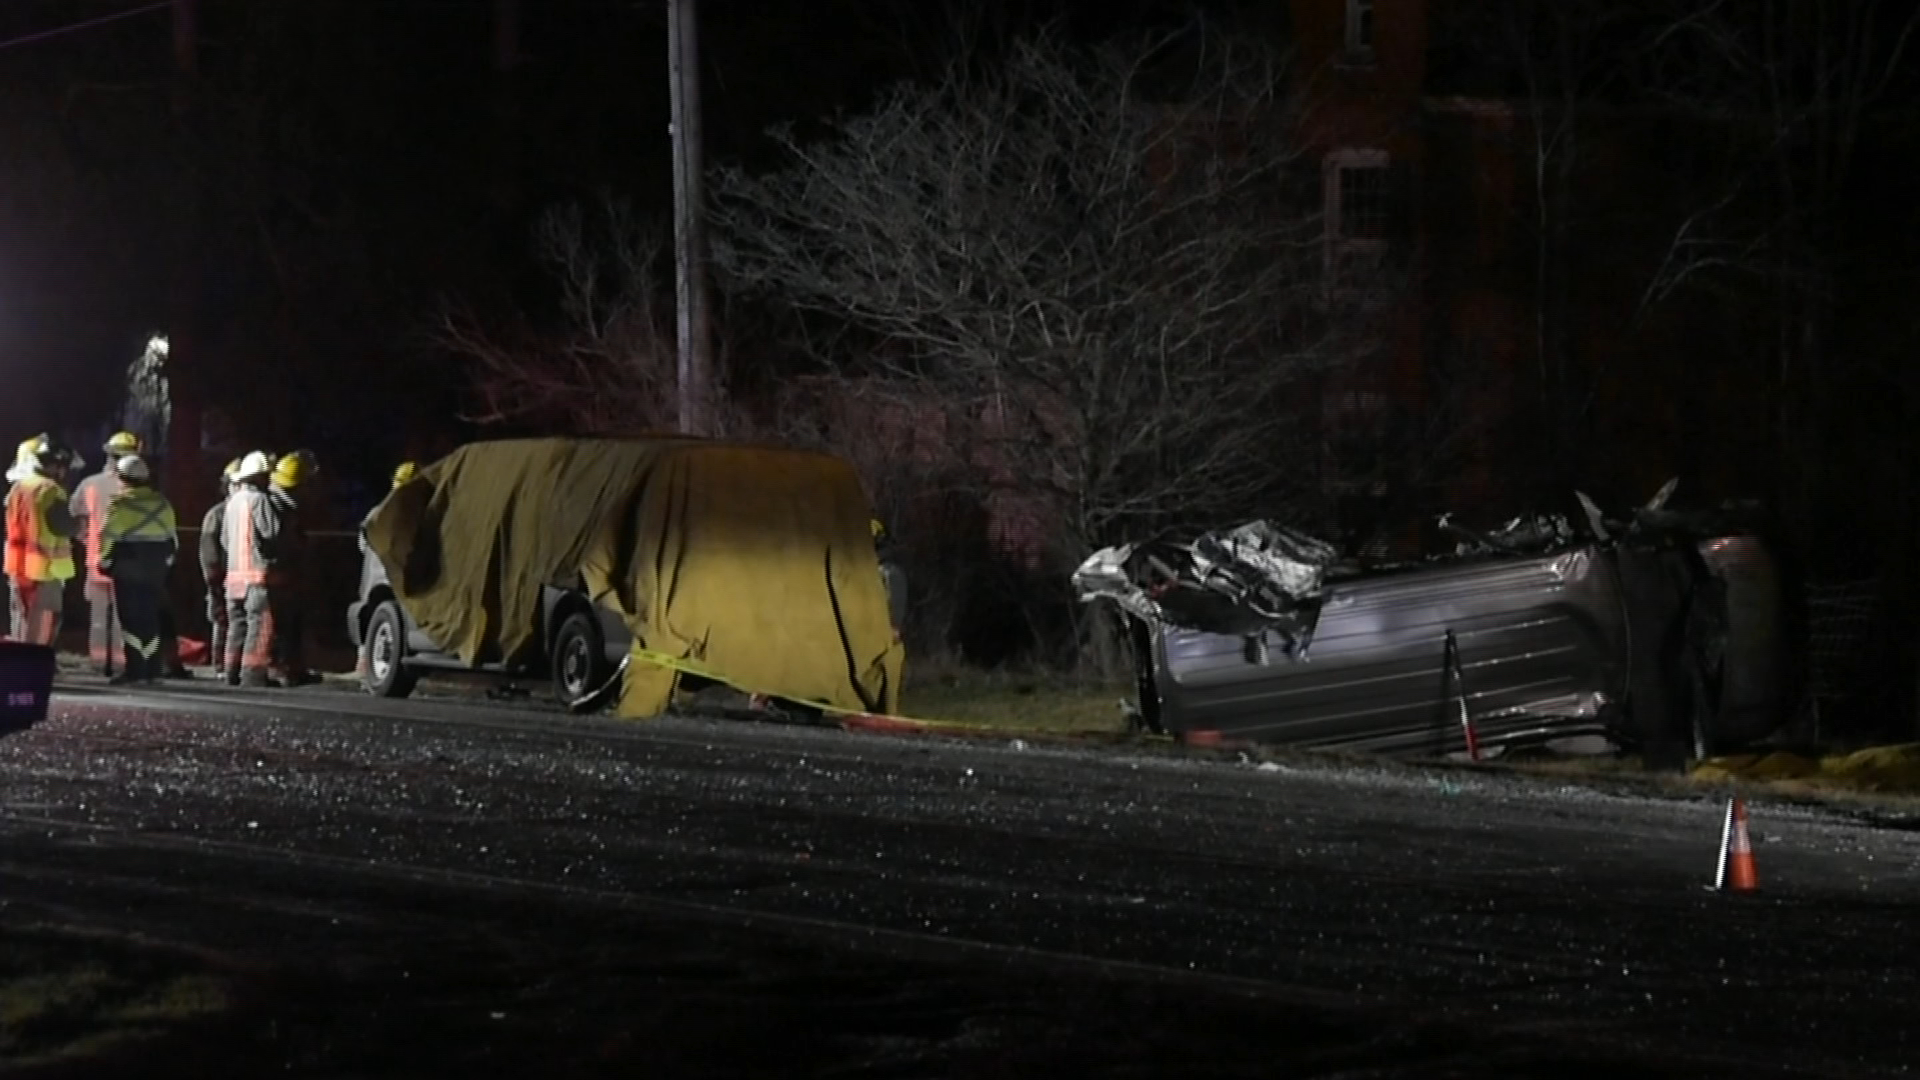 3 dead after 2-vehicle crash in Caledonia, Ont.